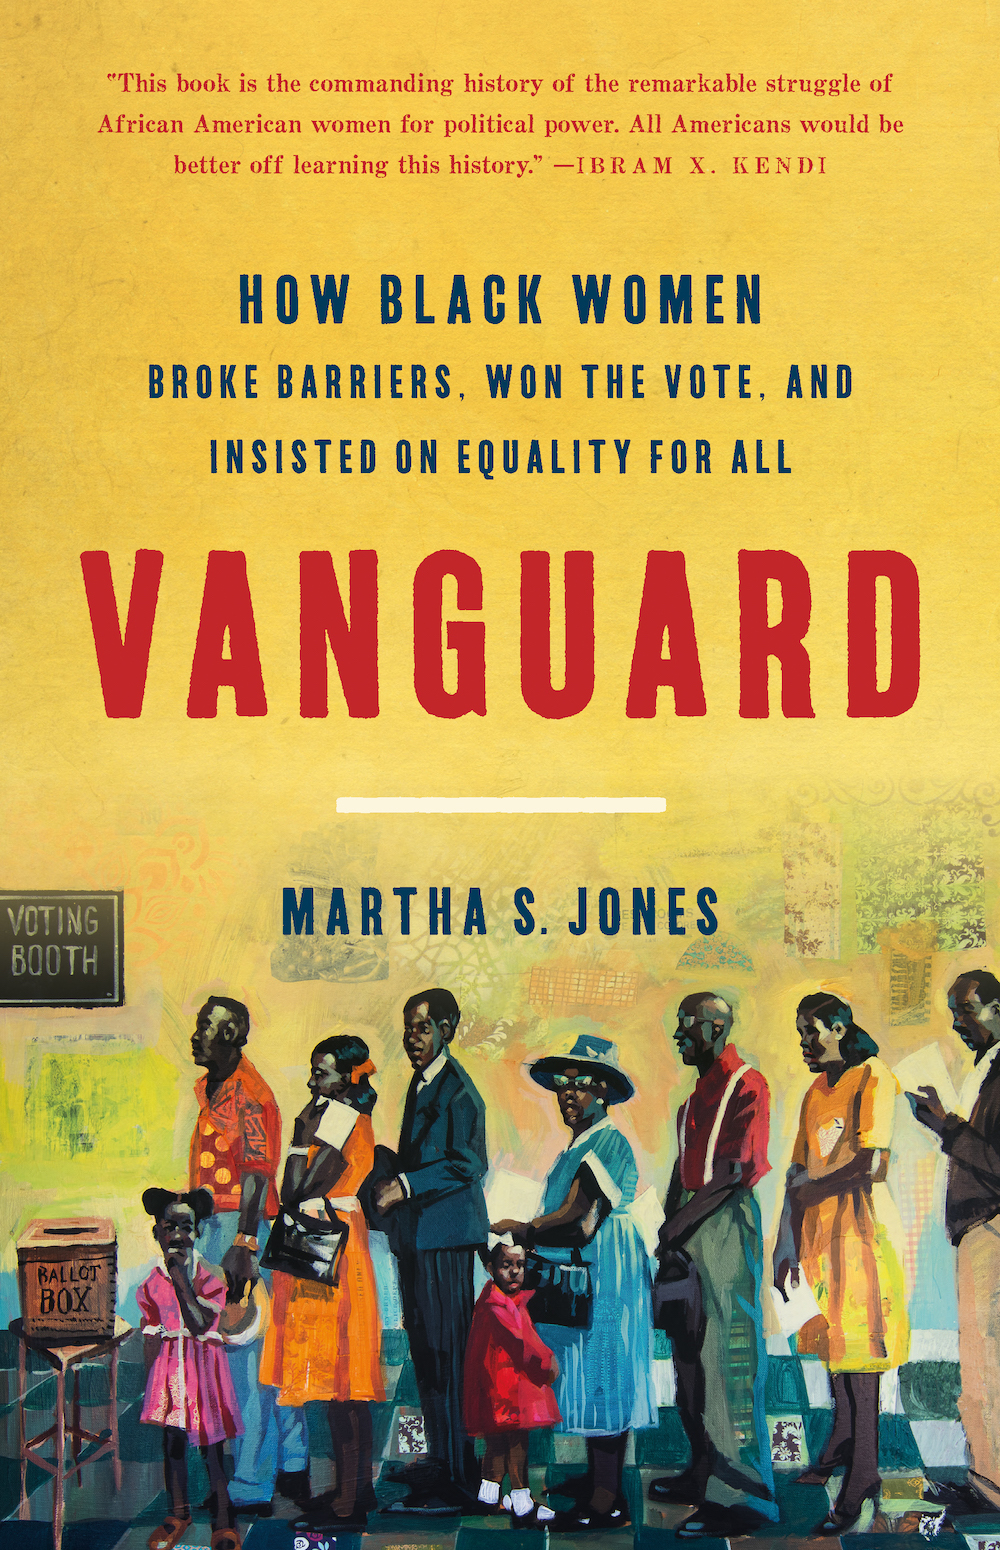 The cover of Vanguard: How Black Women Broke Barriers, Won the Vote, and Insisted on Equality for All